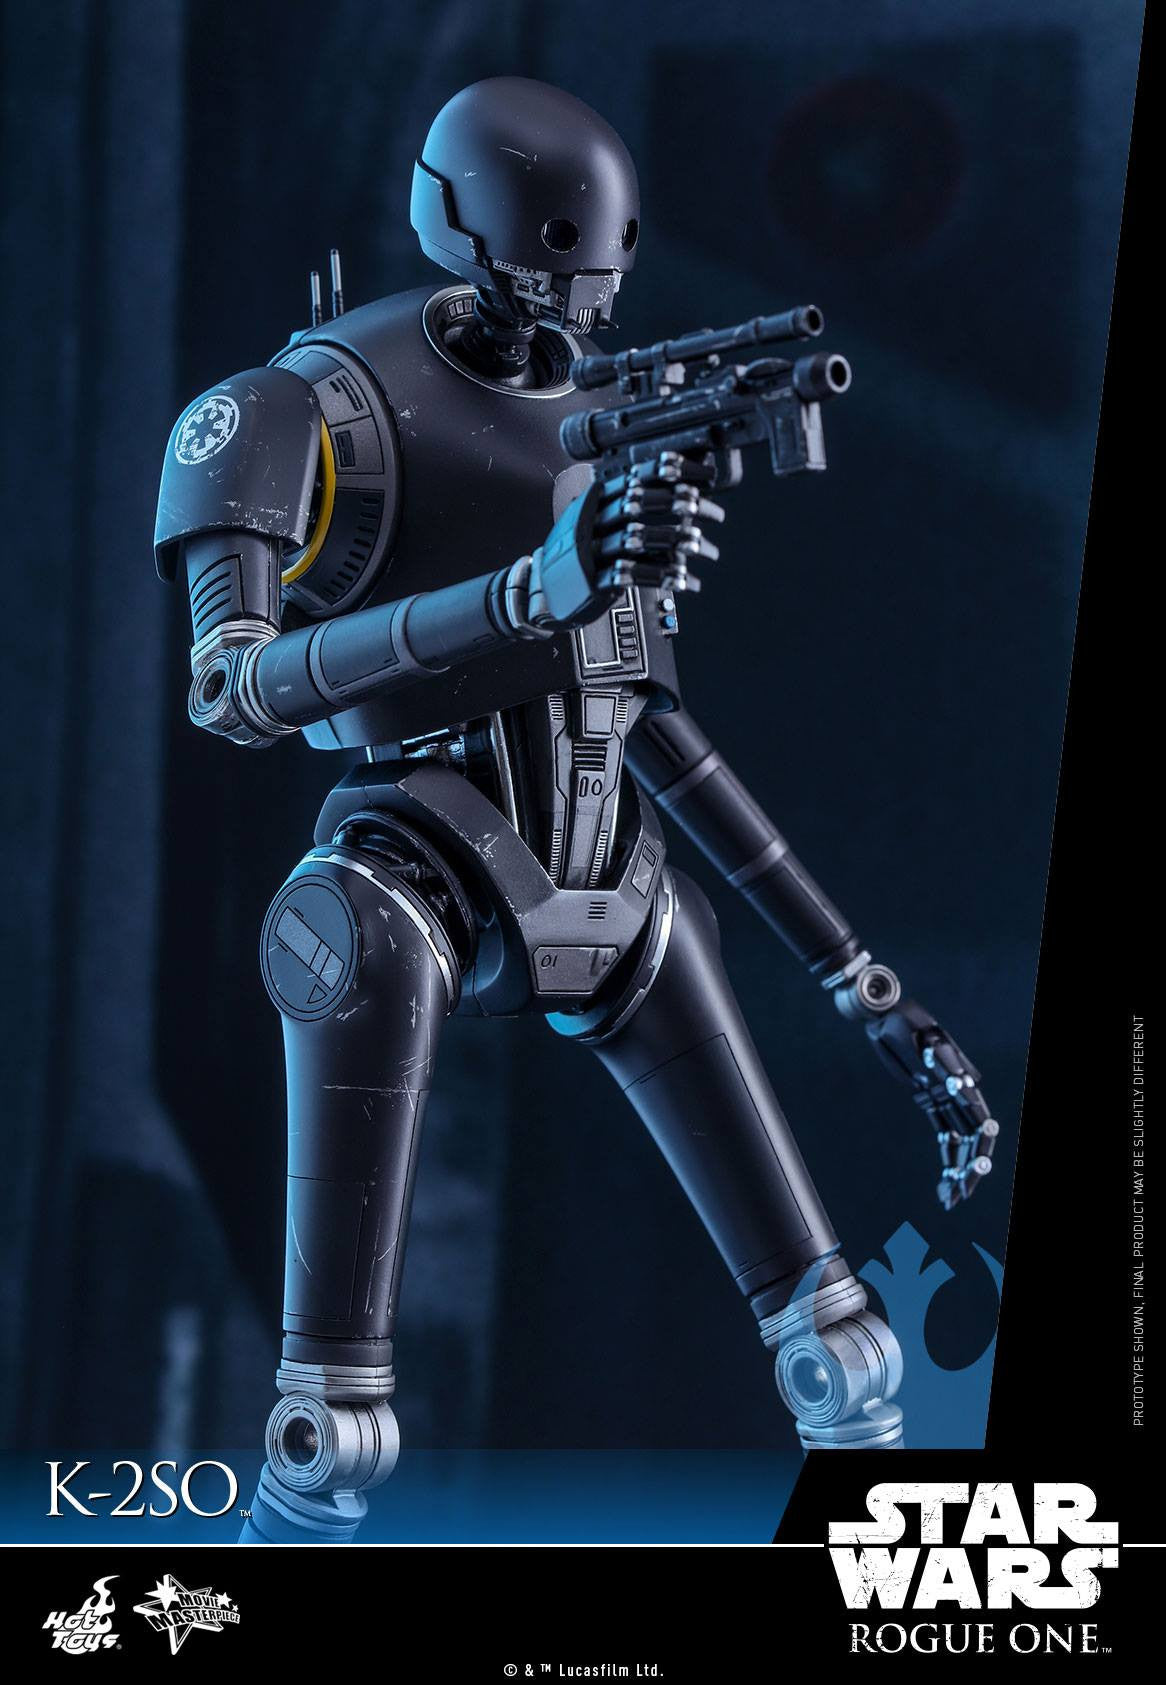 Hot Toys - MMS406 - Rogue One: A Star Wars Story - K-2SO - Marvelous Toys - 4